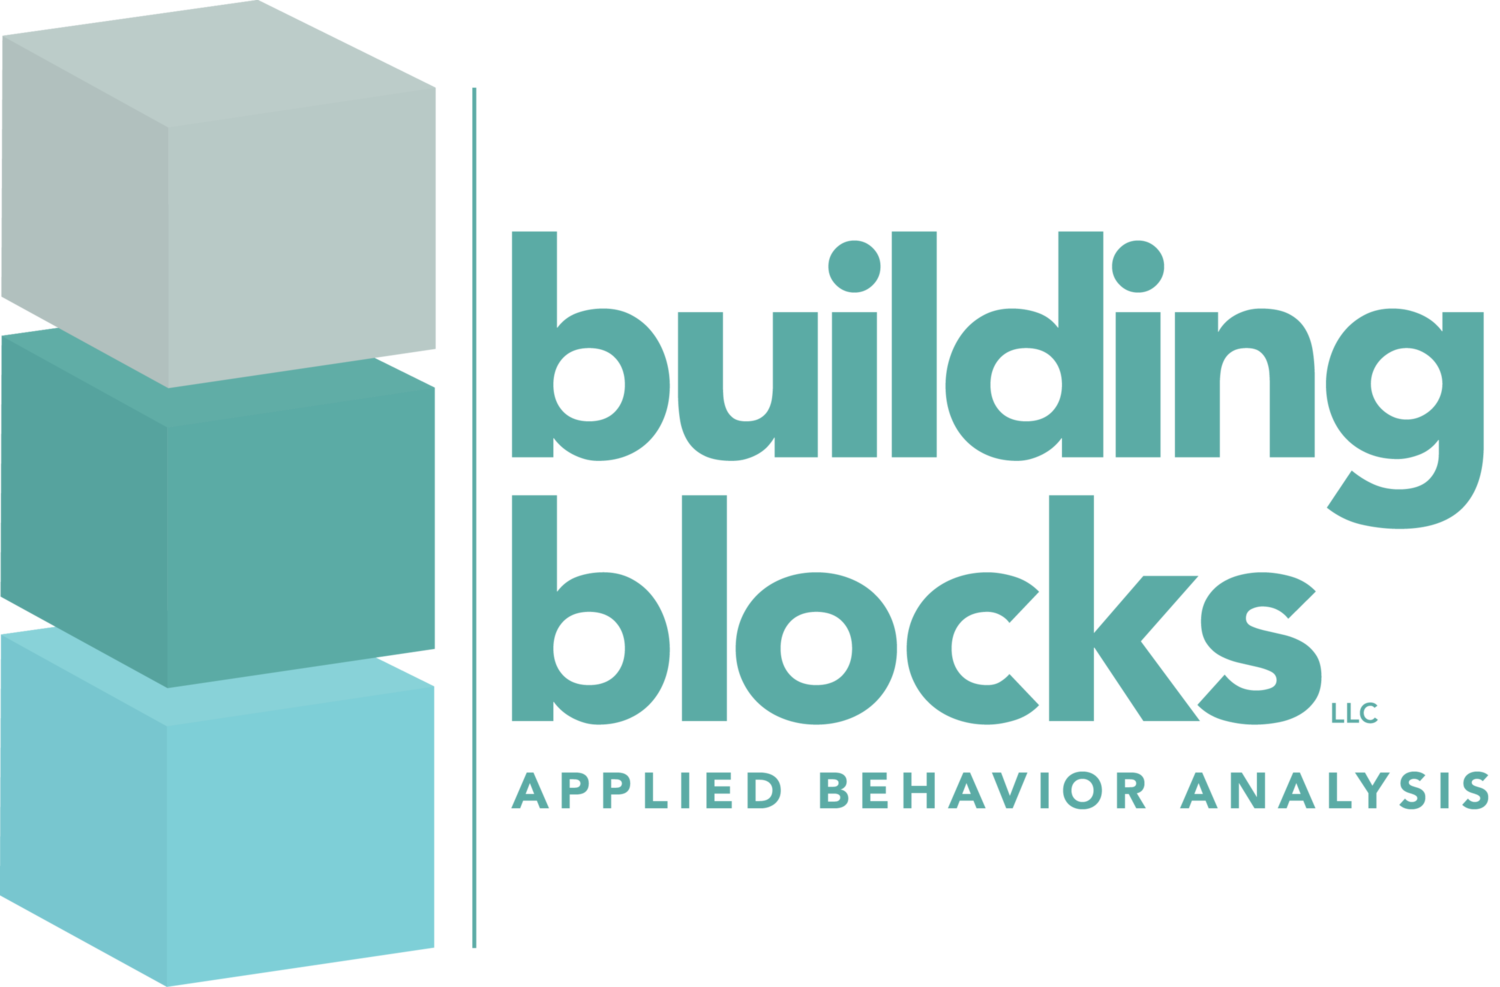 Building Blocks LLC